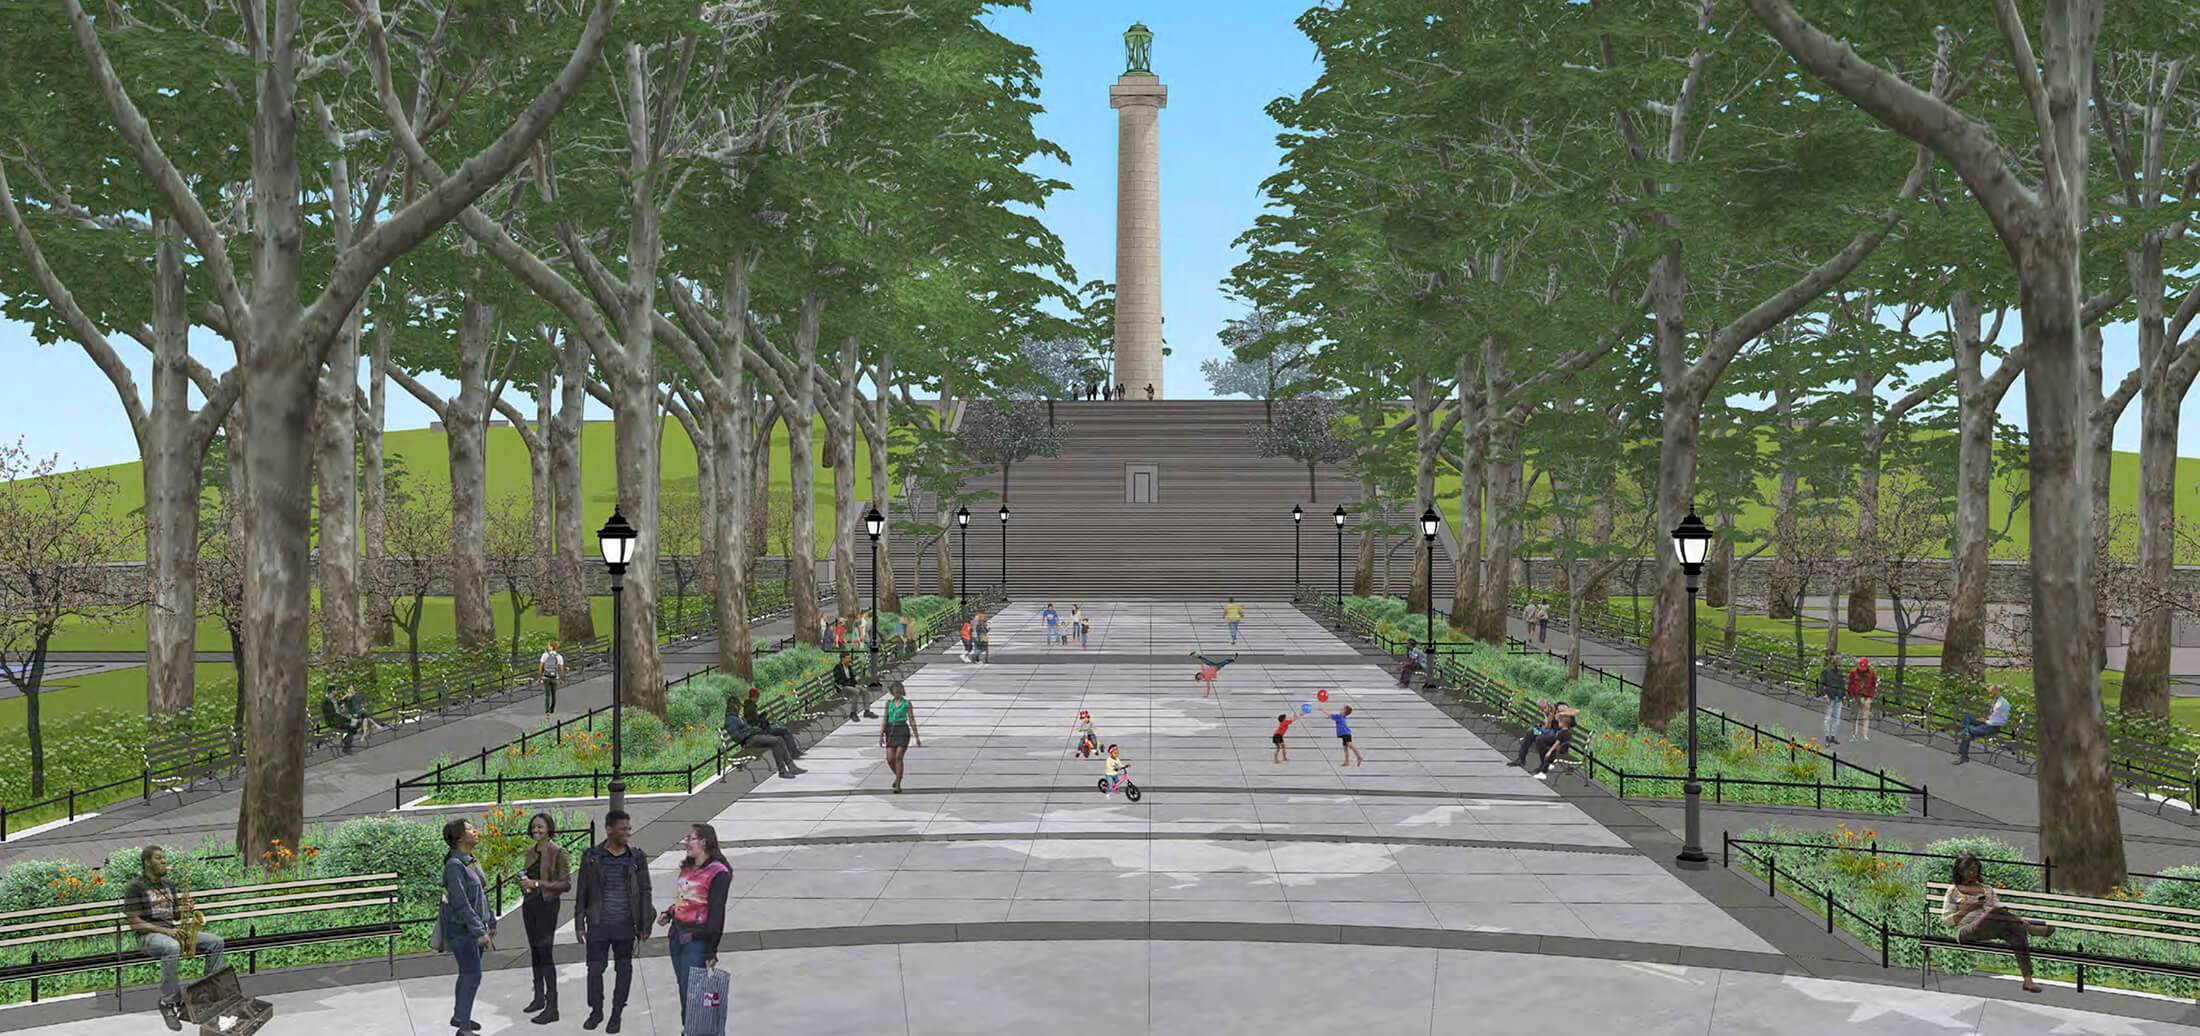 Rendering of Fort Greene Park, with a giant spire in the center